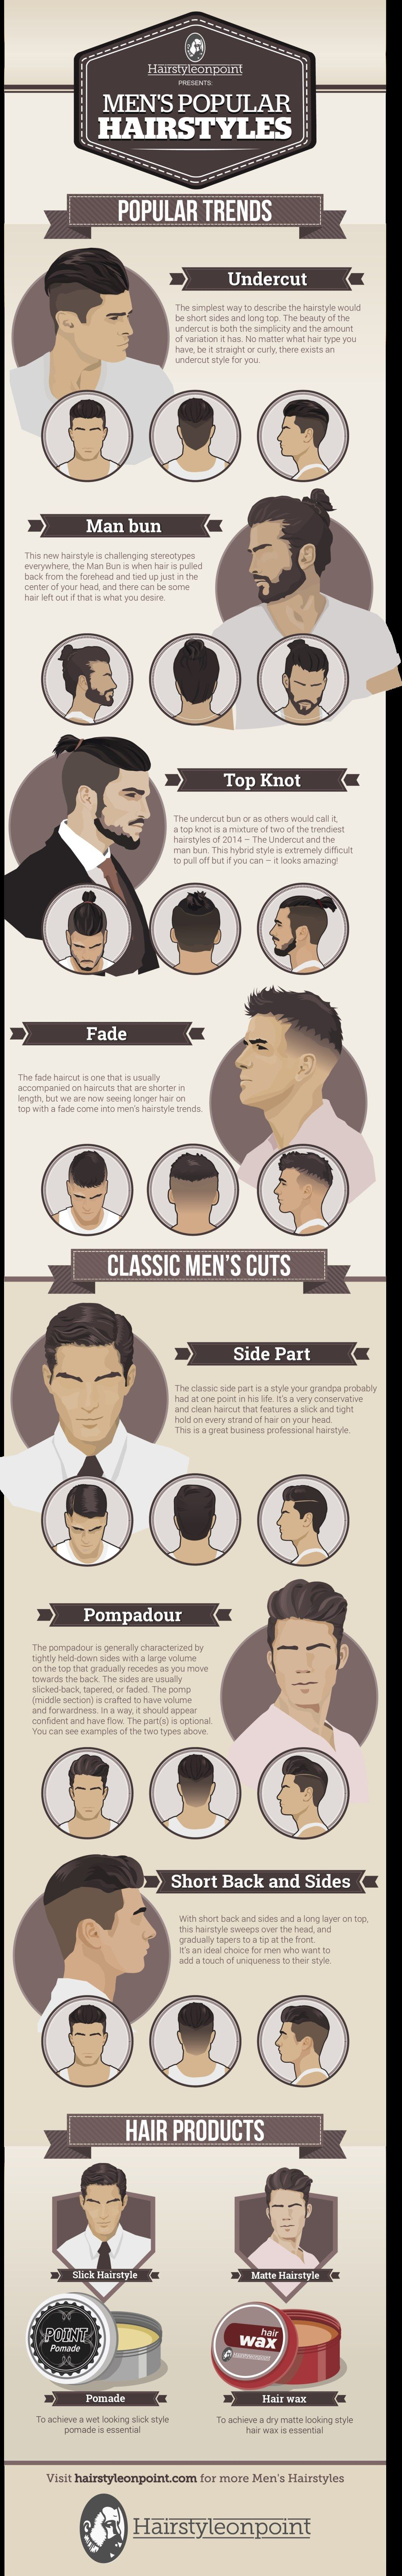 Luckily, men's style blog Hairstyleonpoint created an amazing chart to show what's hot in men's hair, with added suggestions on what products to use. | These Are The Seven Hottest Styles In Men's Hair Right Now